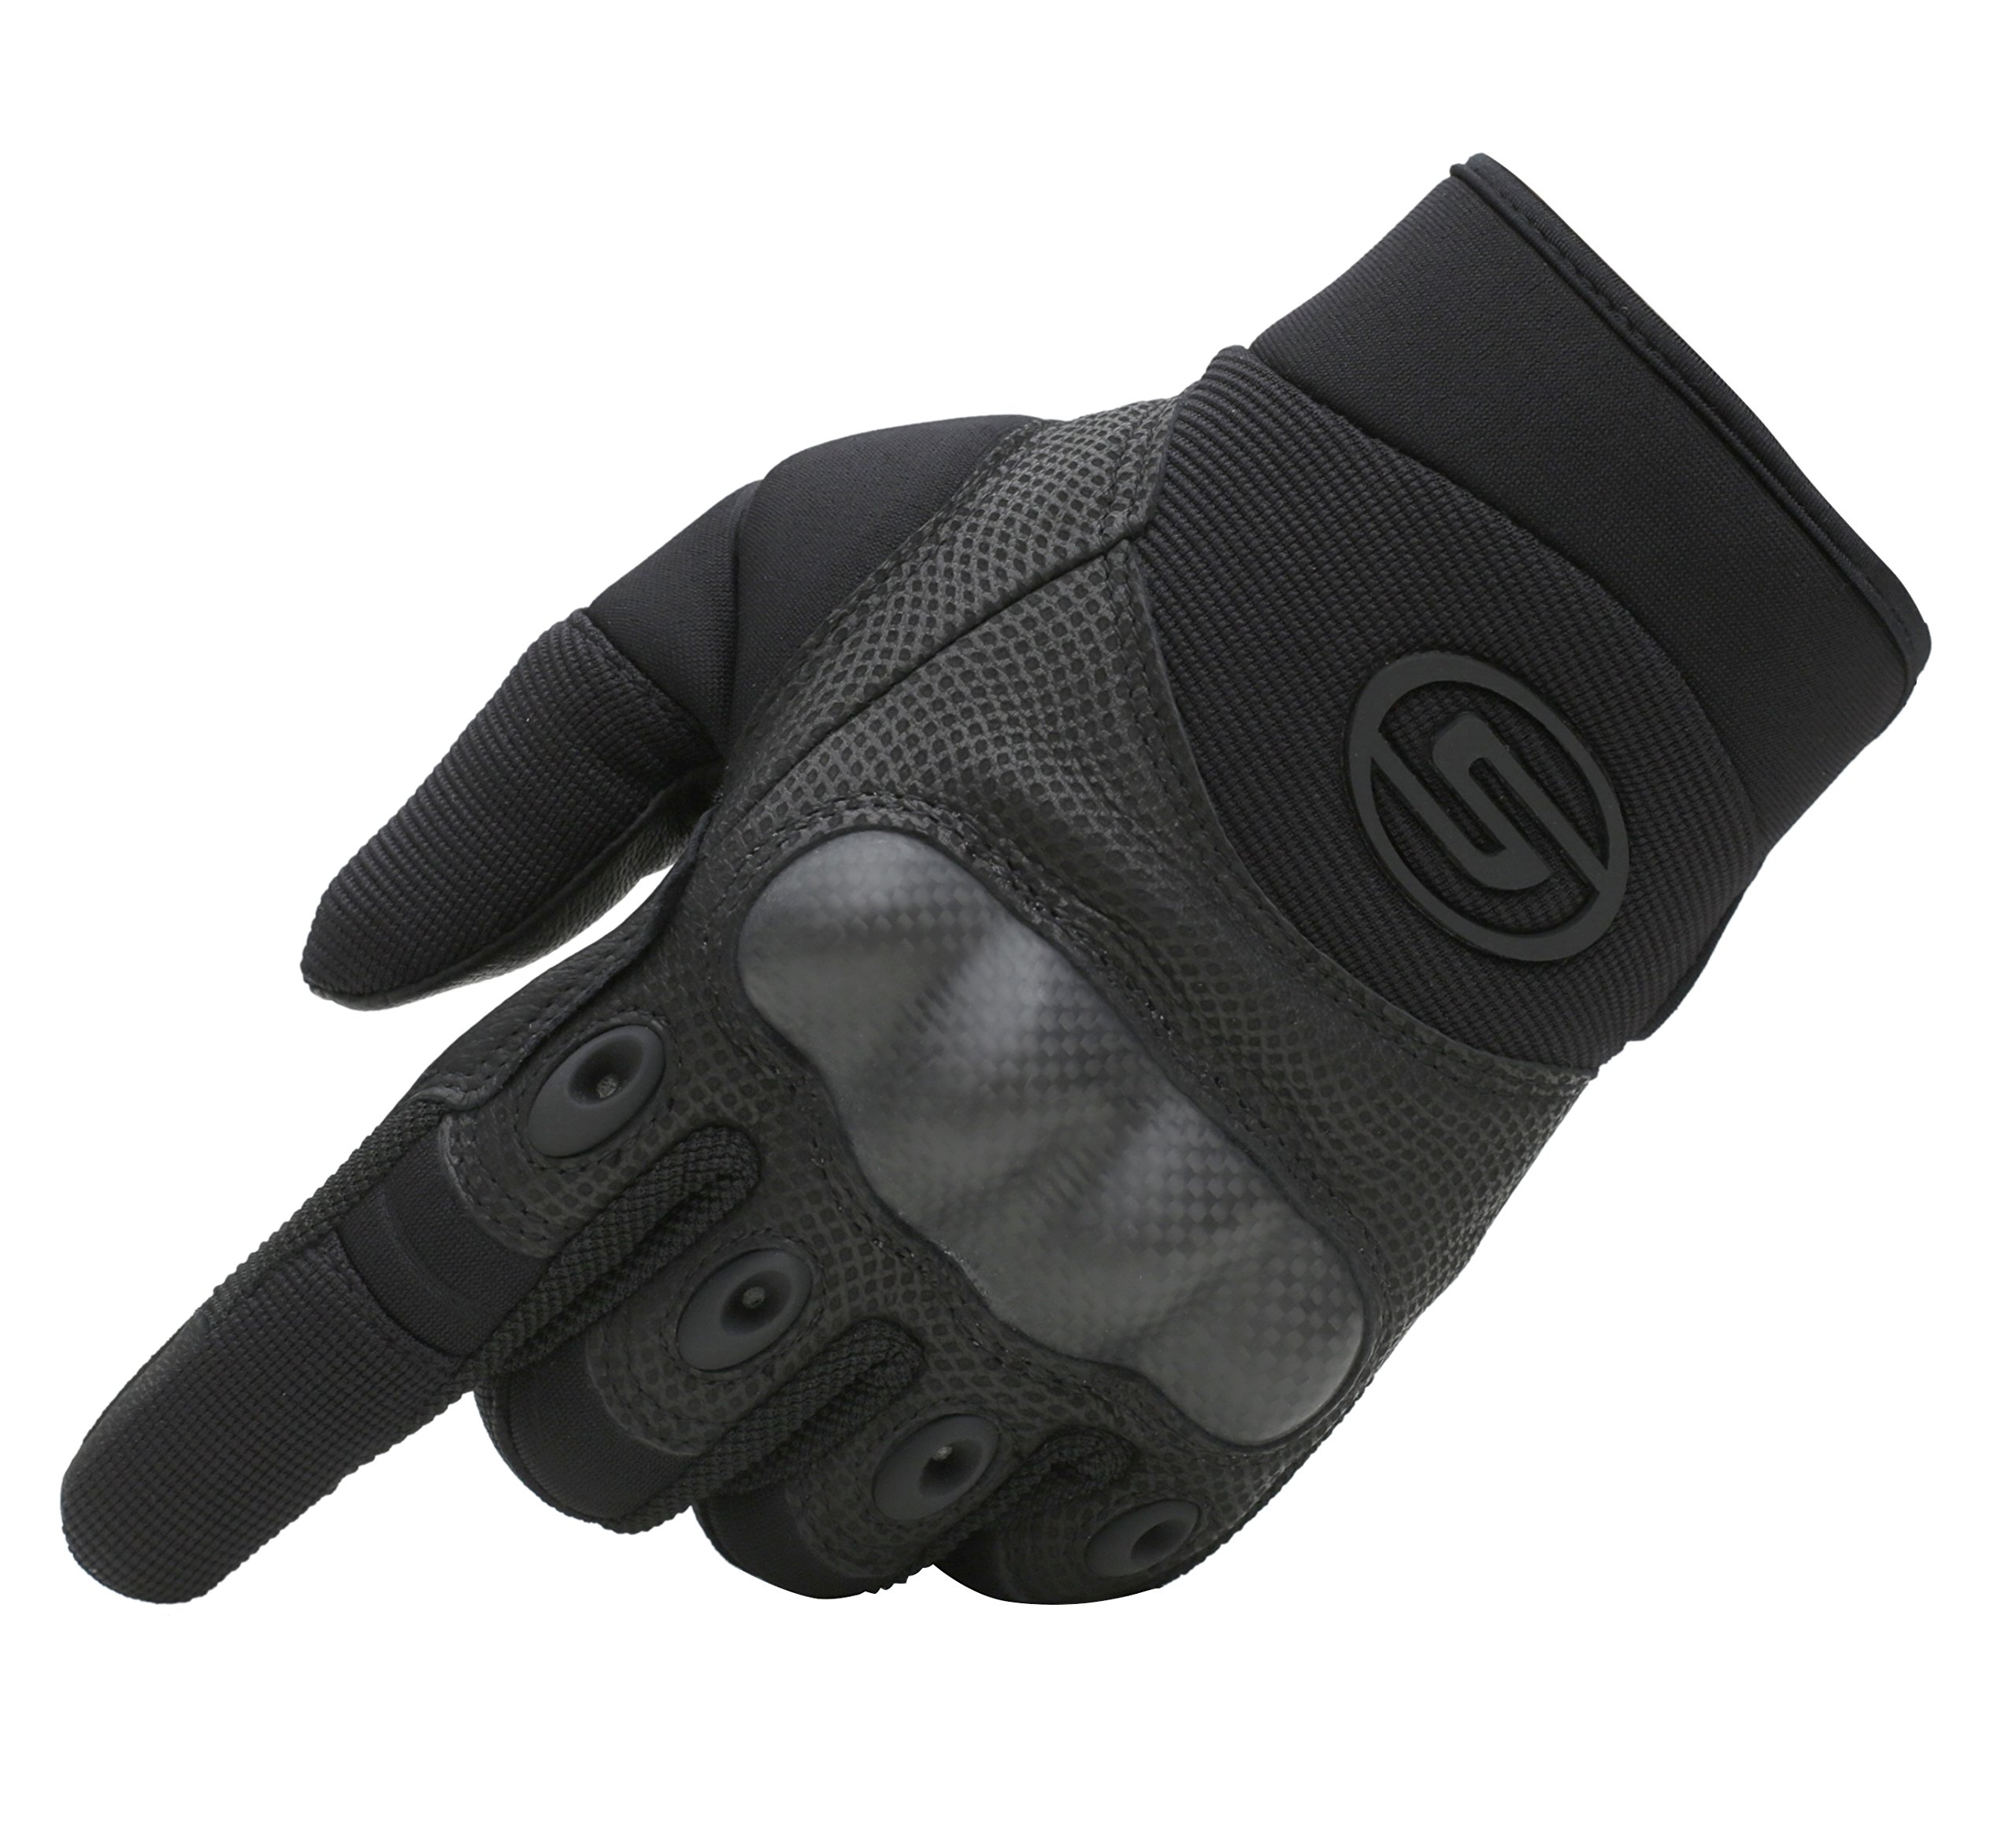 Seibertron Men's Hard Knuckle Military Leather Palm Carbon Fiber Glove Outdoor Sports Tactical Airsoft Hunting Cycling Bike Motorcycle MTB Gloves Black M